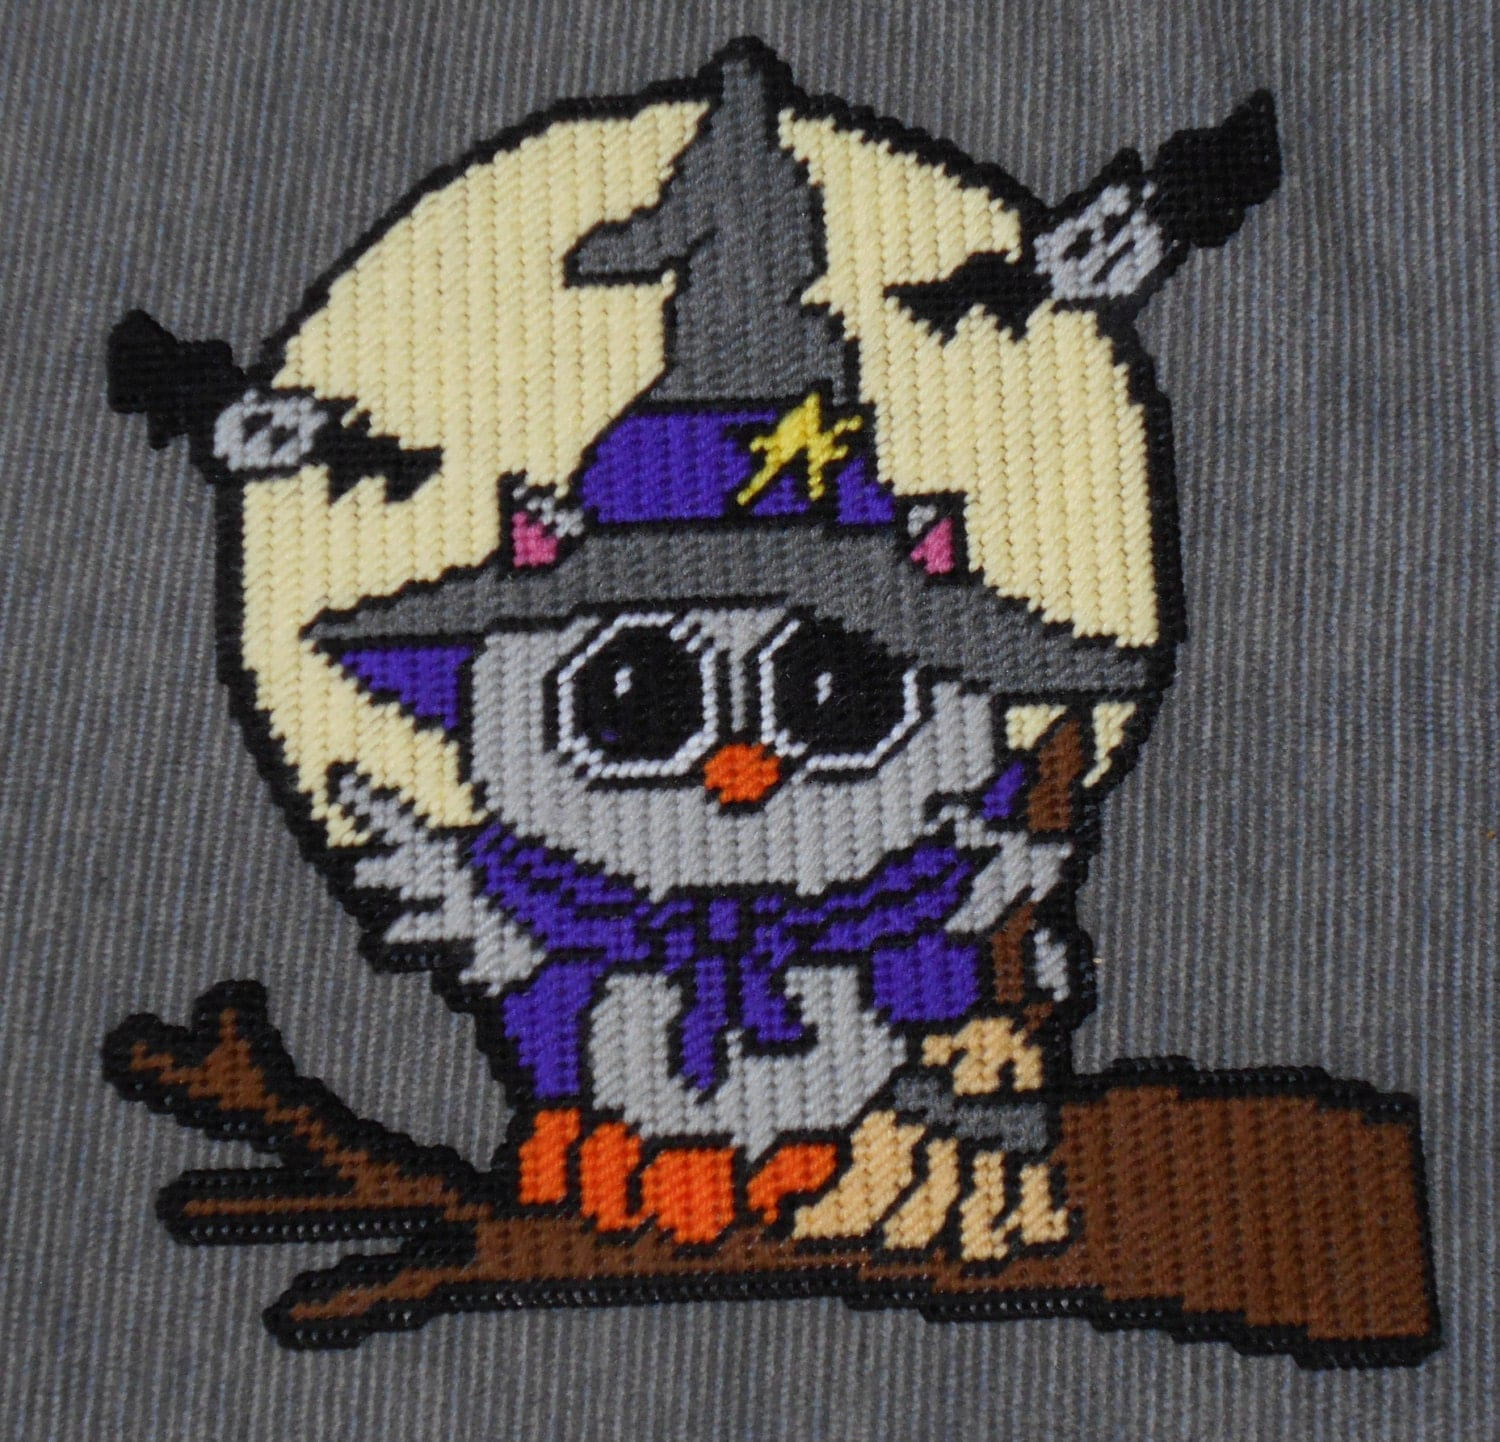 This is a picture of Impertinent Free Printable Halloween Plastic Canvas Patterns